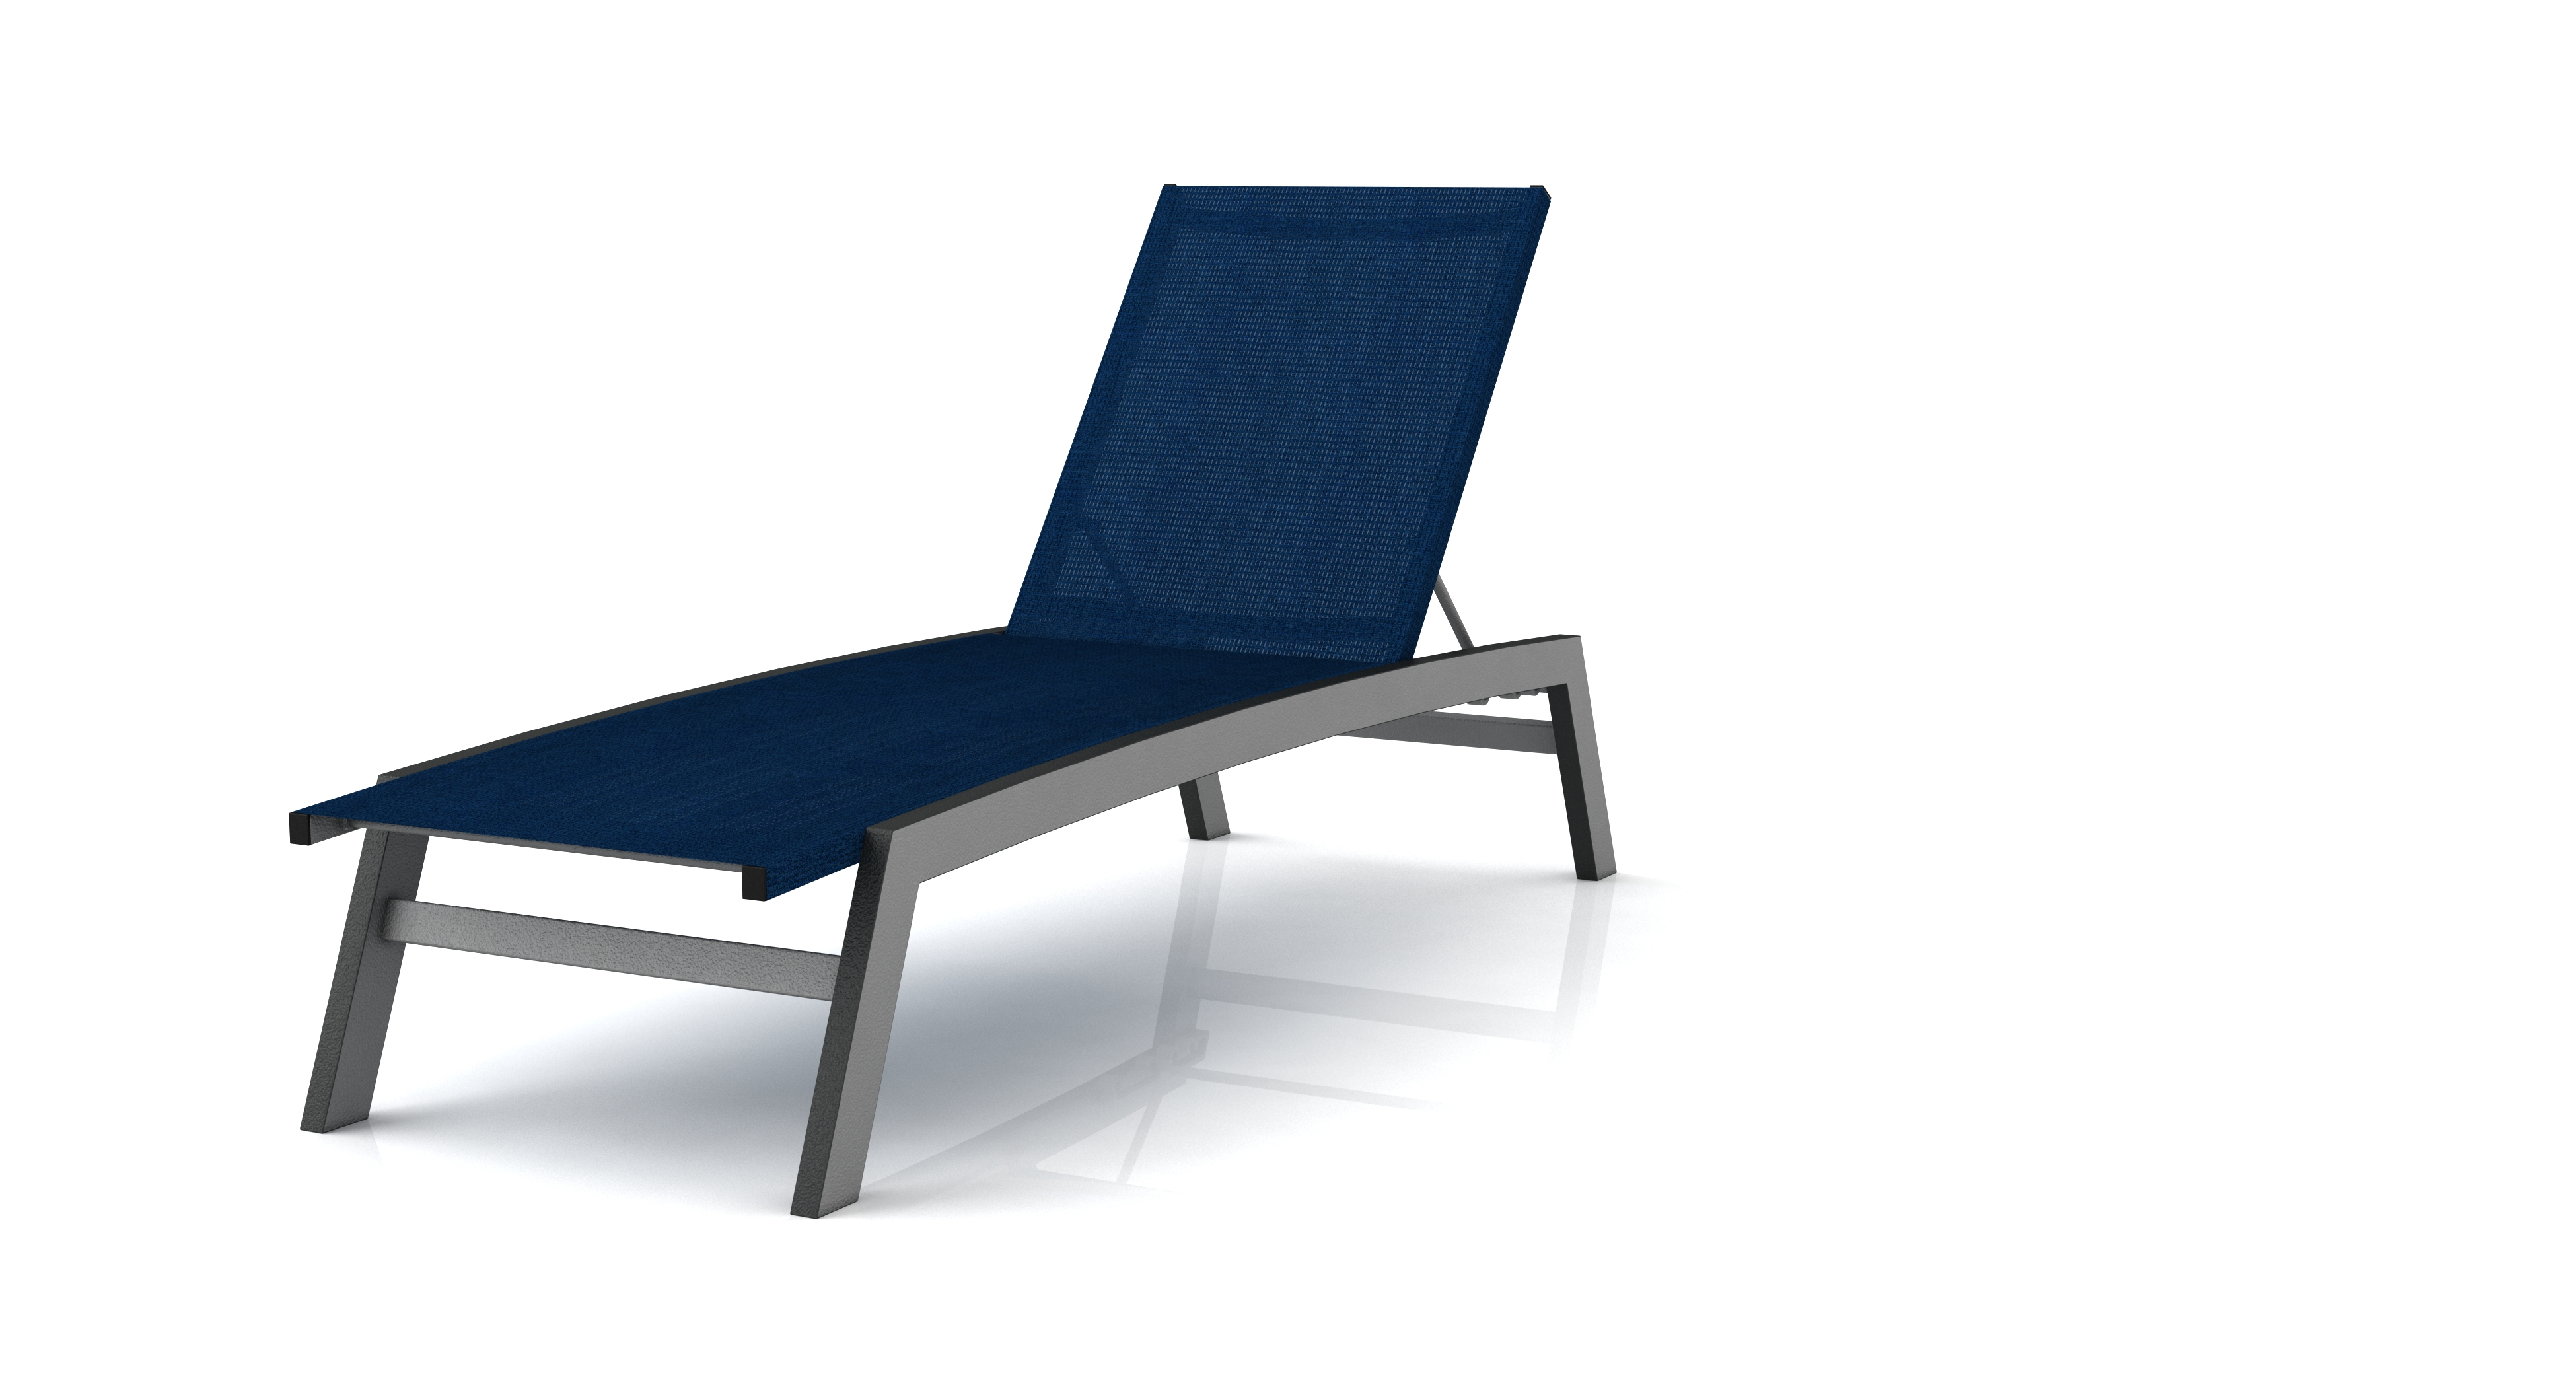 Well Known Biscayne White Chaise Lounge Chairs Within Biscayne Aluminum Frame Chaise Lounge Chair (View 13 of 25)